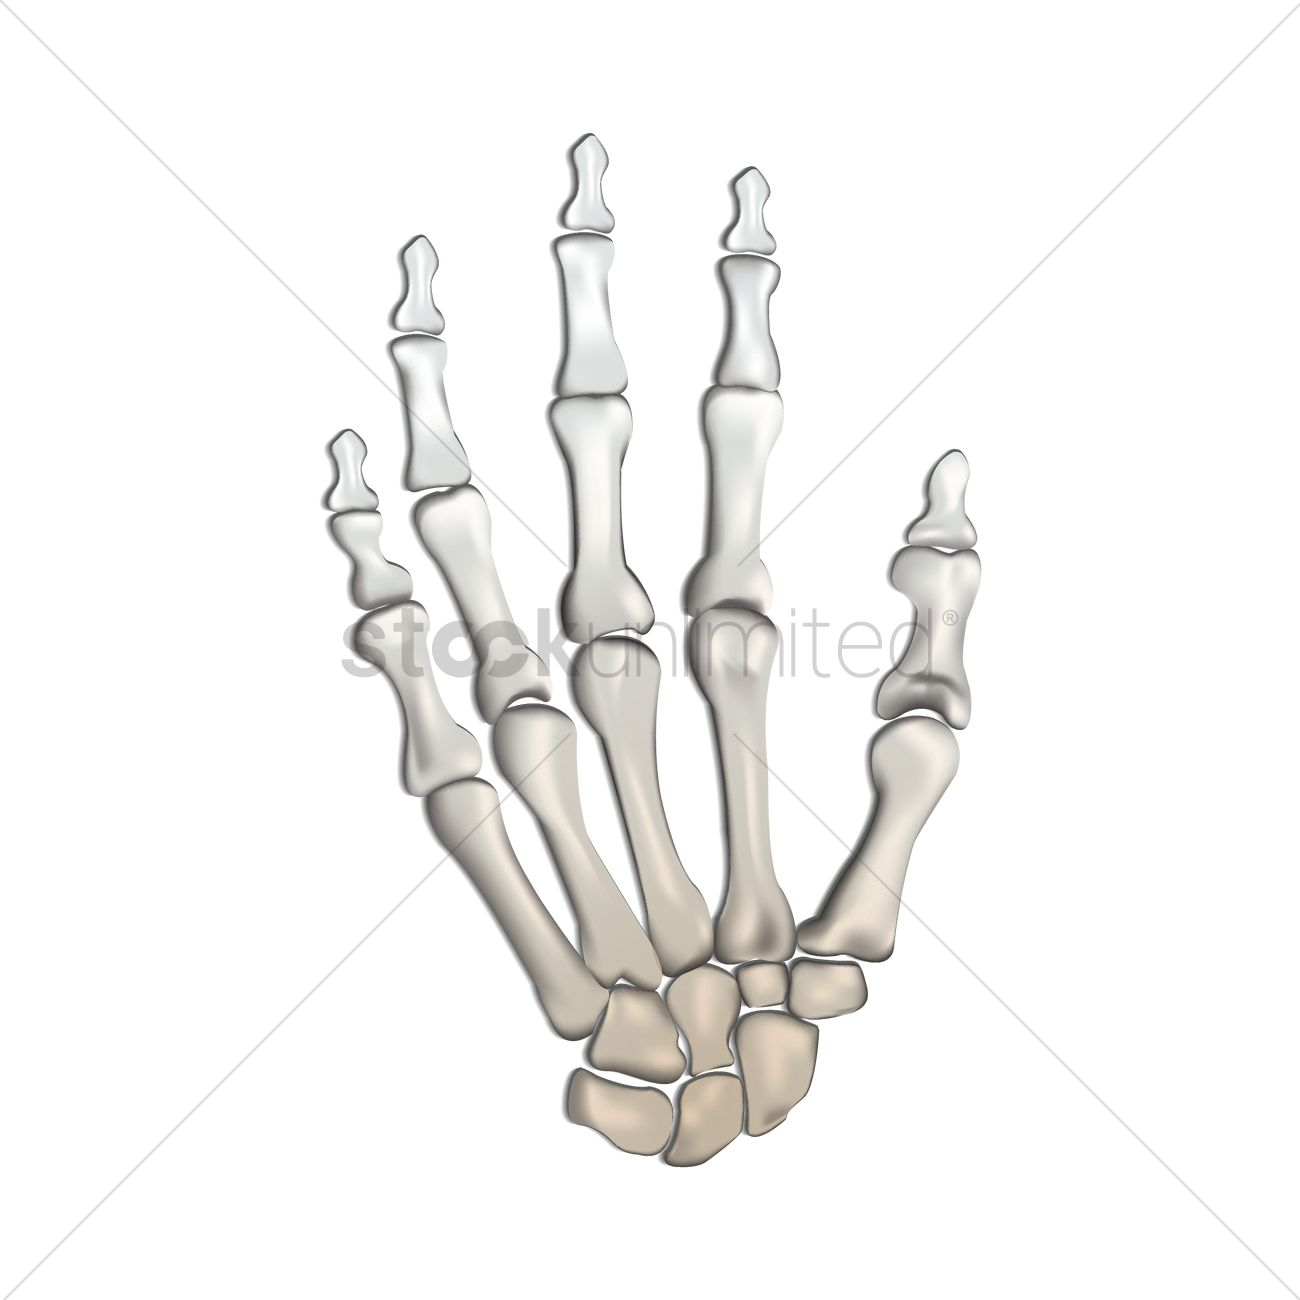 wrist and hand unlabeled diagram chicken wing bones of human vector image 1815224 stockunlimited